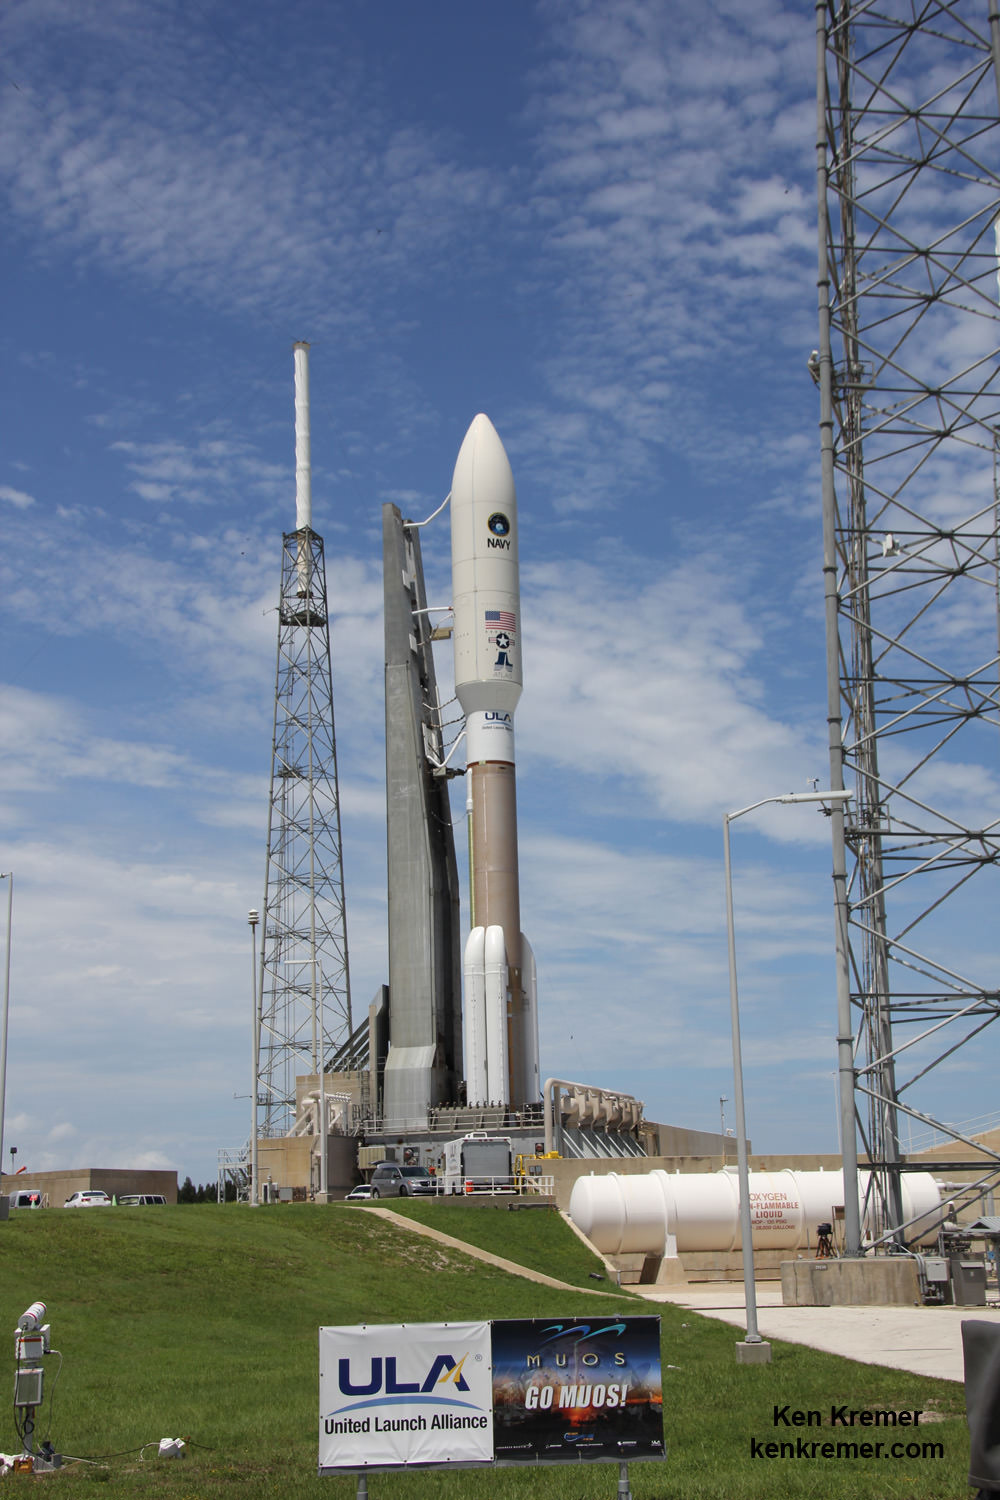 MUOS-4 US Navy communications satellite and United Launch Alliance Atlas V rocket at pad 41 at Cape Canaveral Air Force Station, FL for launch on Sept. 2, 2015 at 5:59 a.m. EDT. Credit: Ken Kremer/kenkremer.com